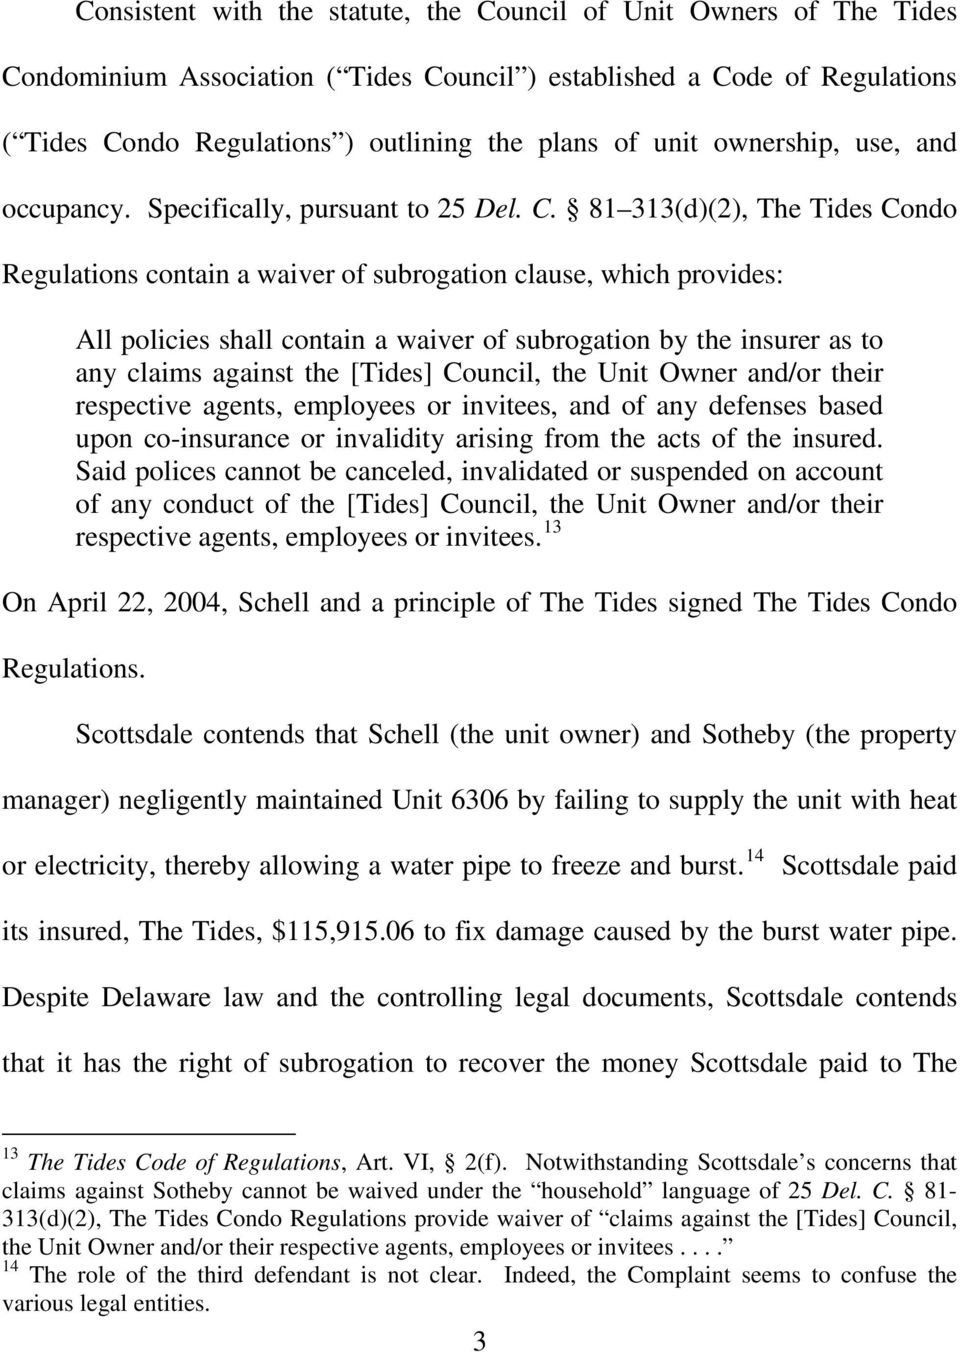 81 313(d)(2), The Tides Condo Regulations contain a waiver of subrogation clause, which provides: All policies shall contain a waiver of subrogation by the insurer as to any claims against the